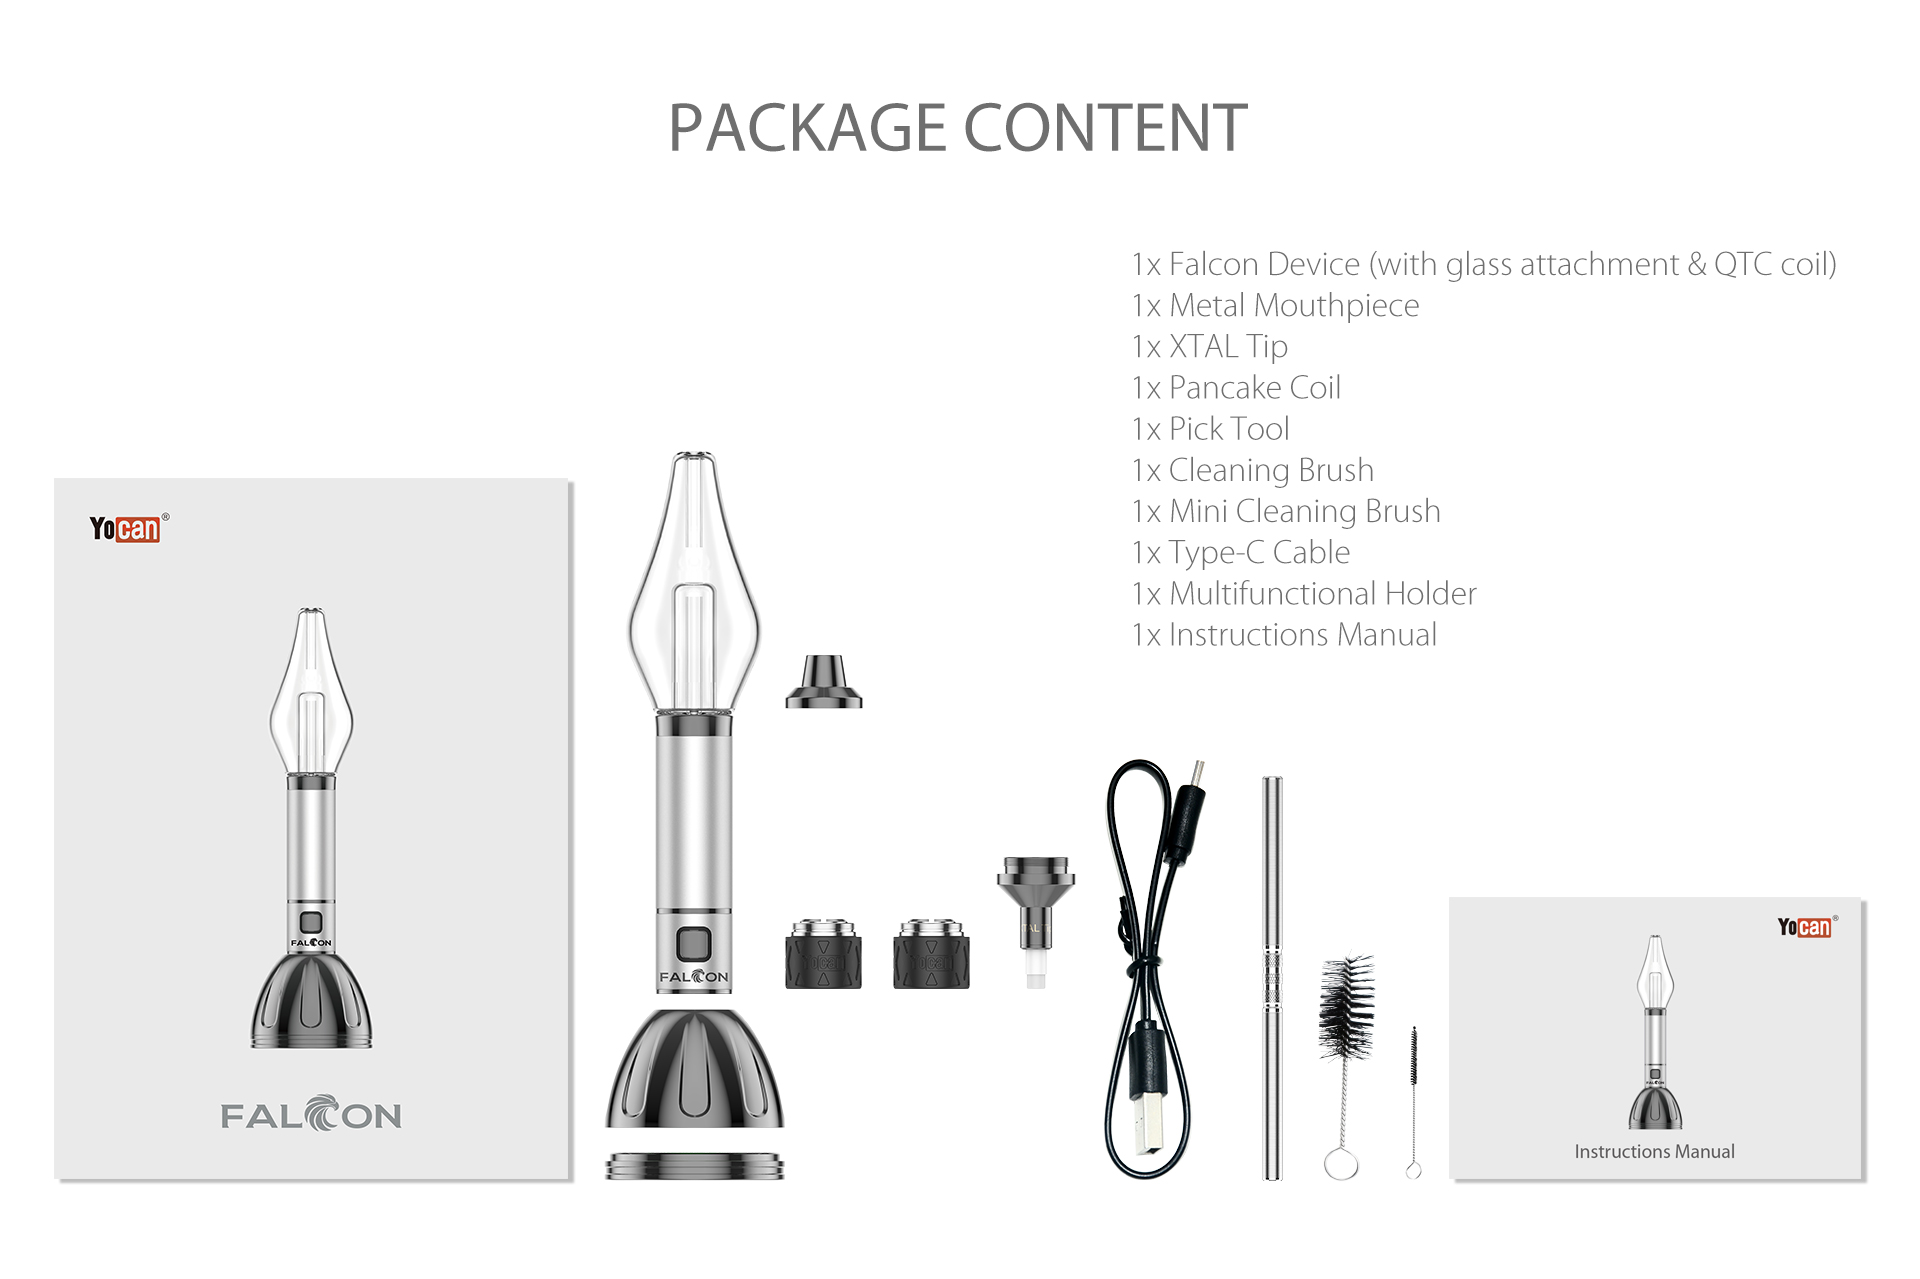 Yocan Falcon Vaporizer Package Content.